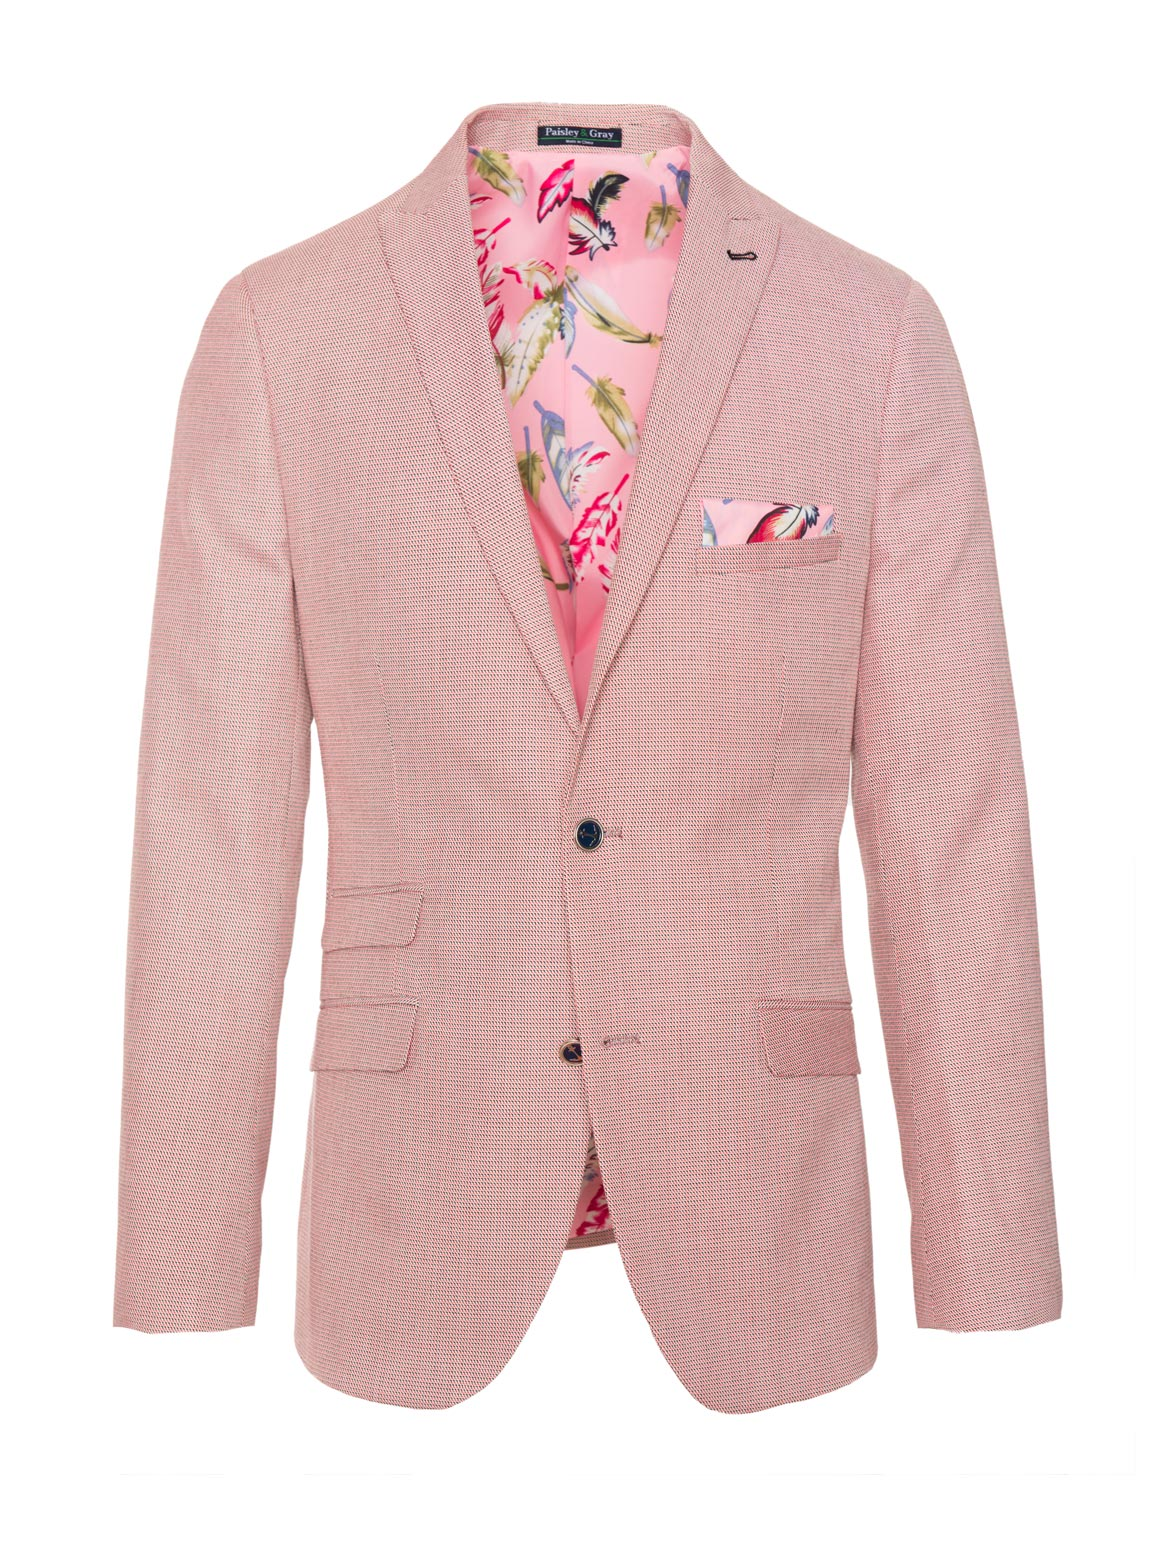 paisley & gray pink neat slim fit peak lapel suit jacket 2120J lively, pink feather lining and pocket square navy plated buttons flap pockets